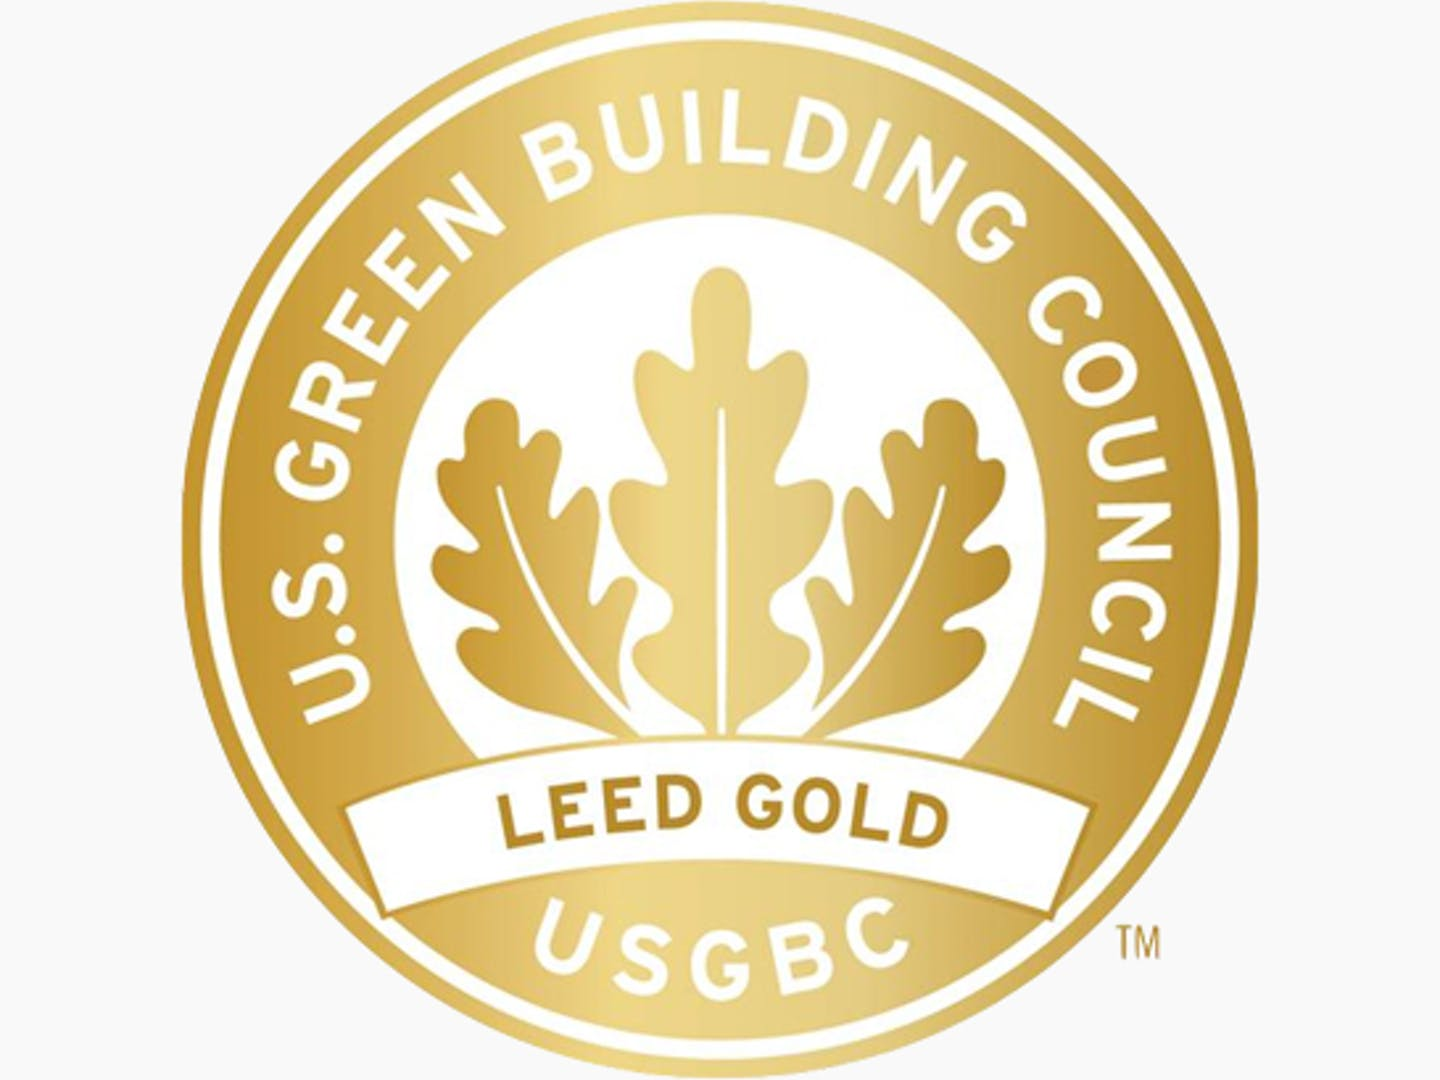 epb-earns-leed-gold-for-environmental-sustainability-shares-expertise-to-help-other-companies-optimize-operations.jpeg